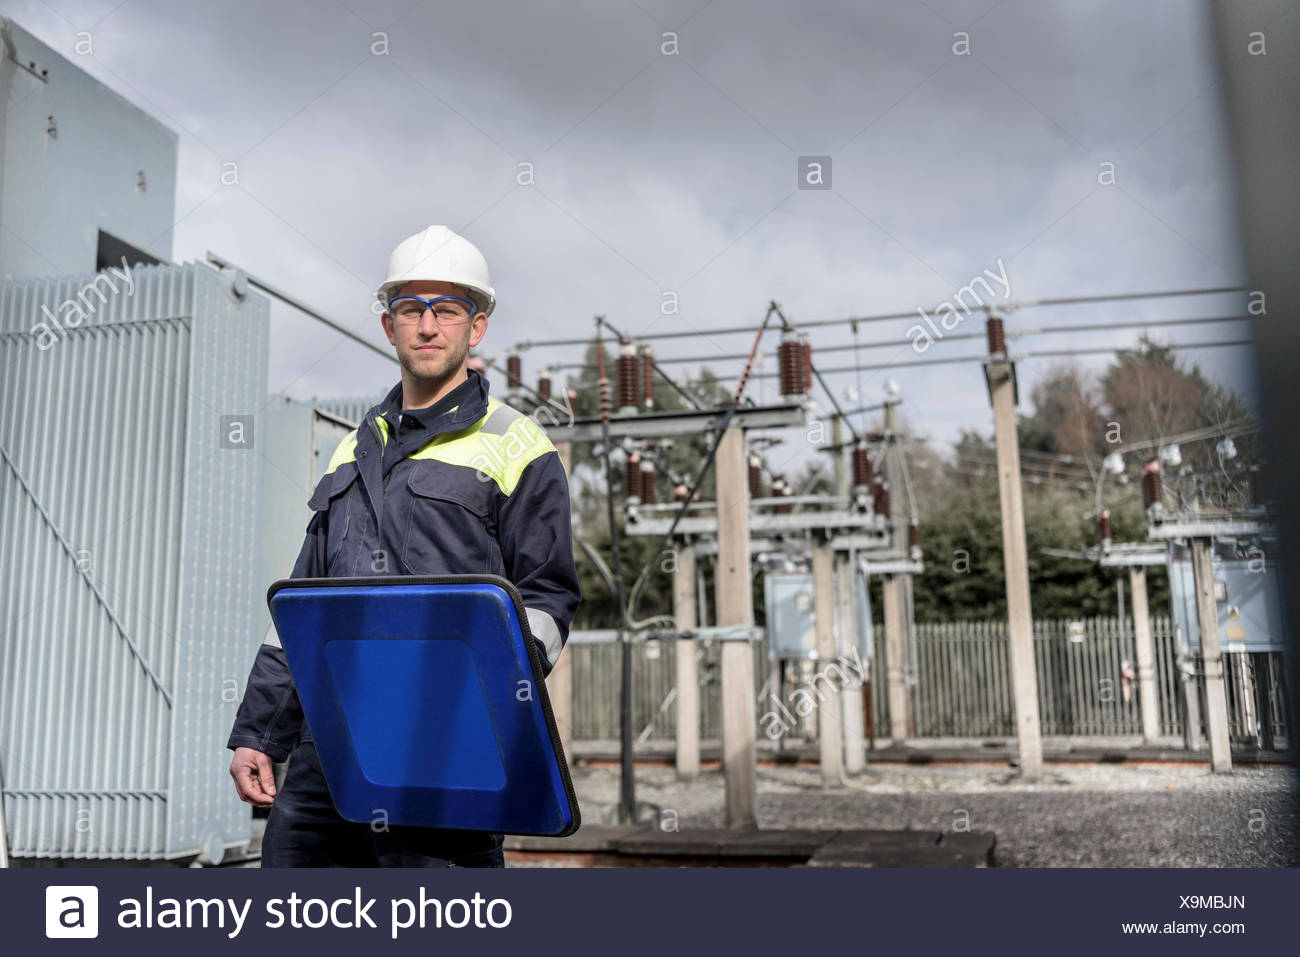 Worker using partial discharge detector in electricity substation - Stock Image